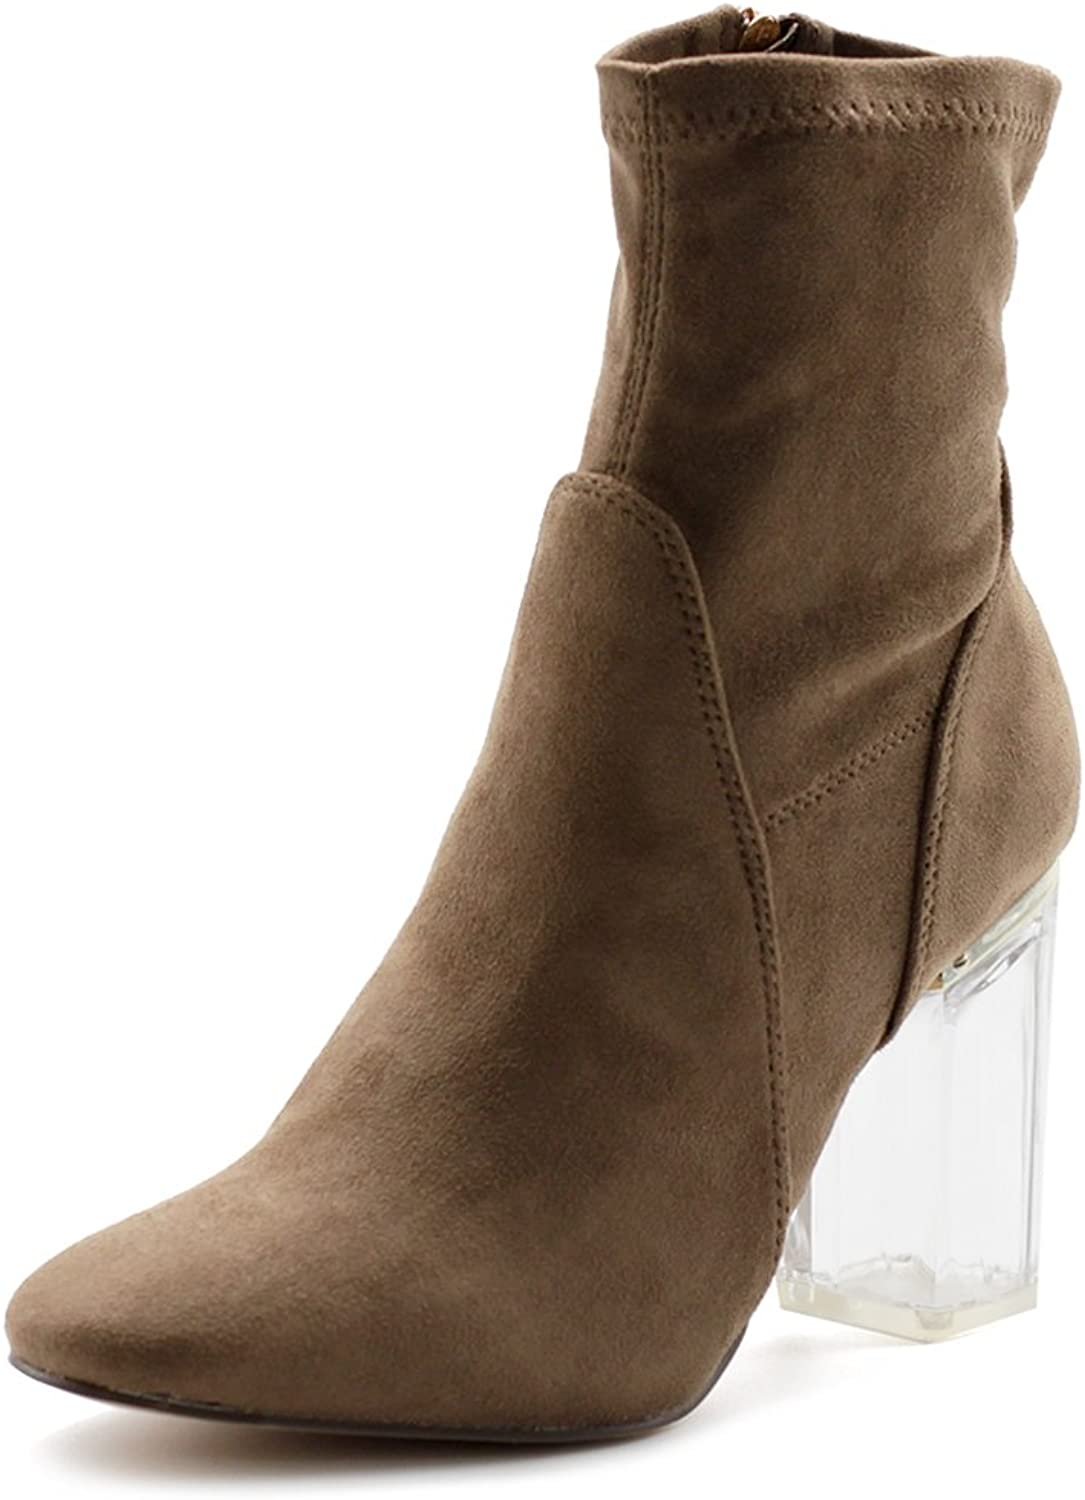 Ollio Women's shoes Stetch Faux Suede Side Zip Up Clear High Heel Ankle Boots